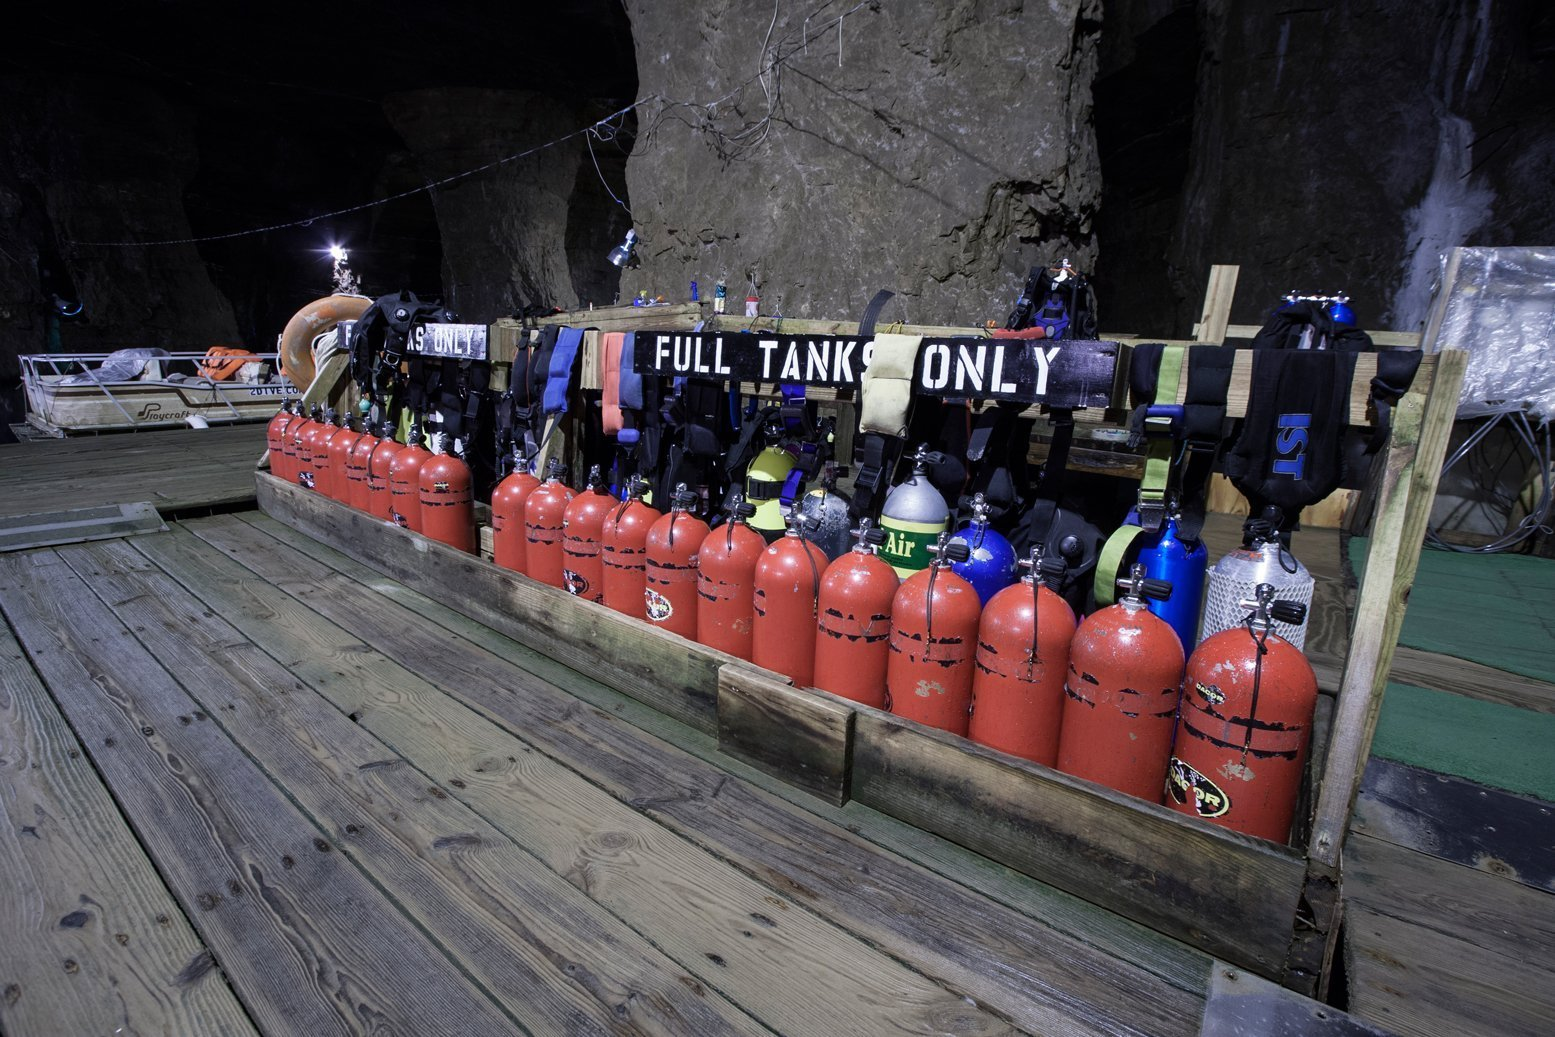 The mine offers scuba diving equipment. Diving tours are led by experienced divers.